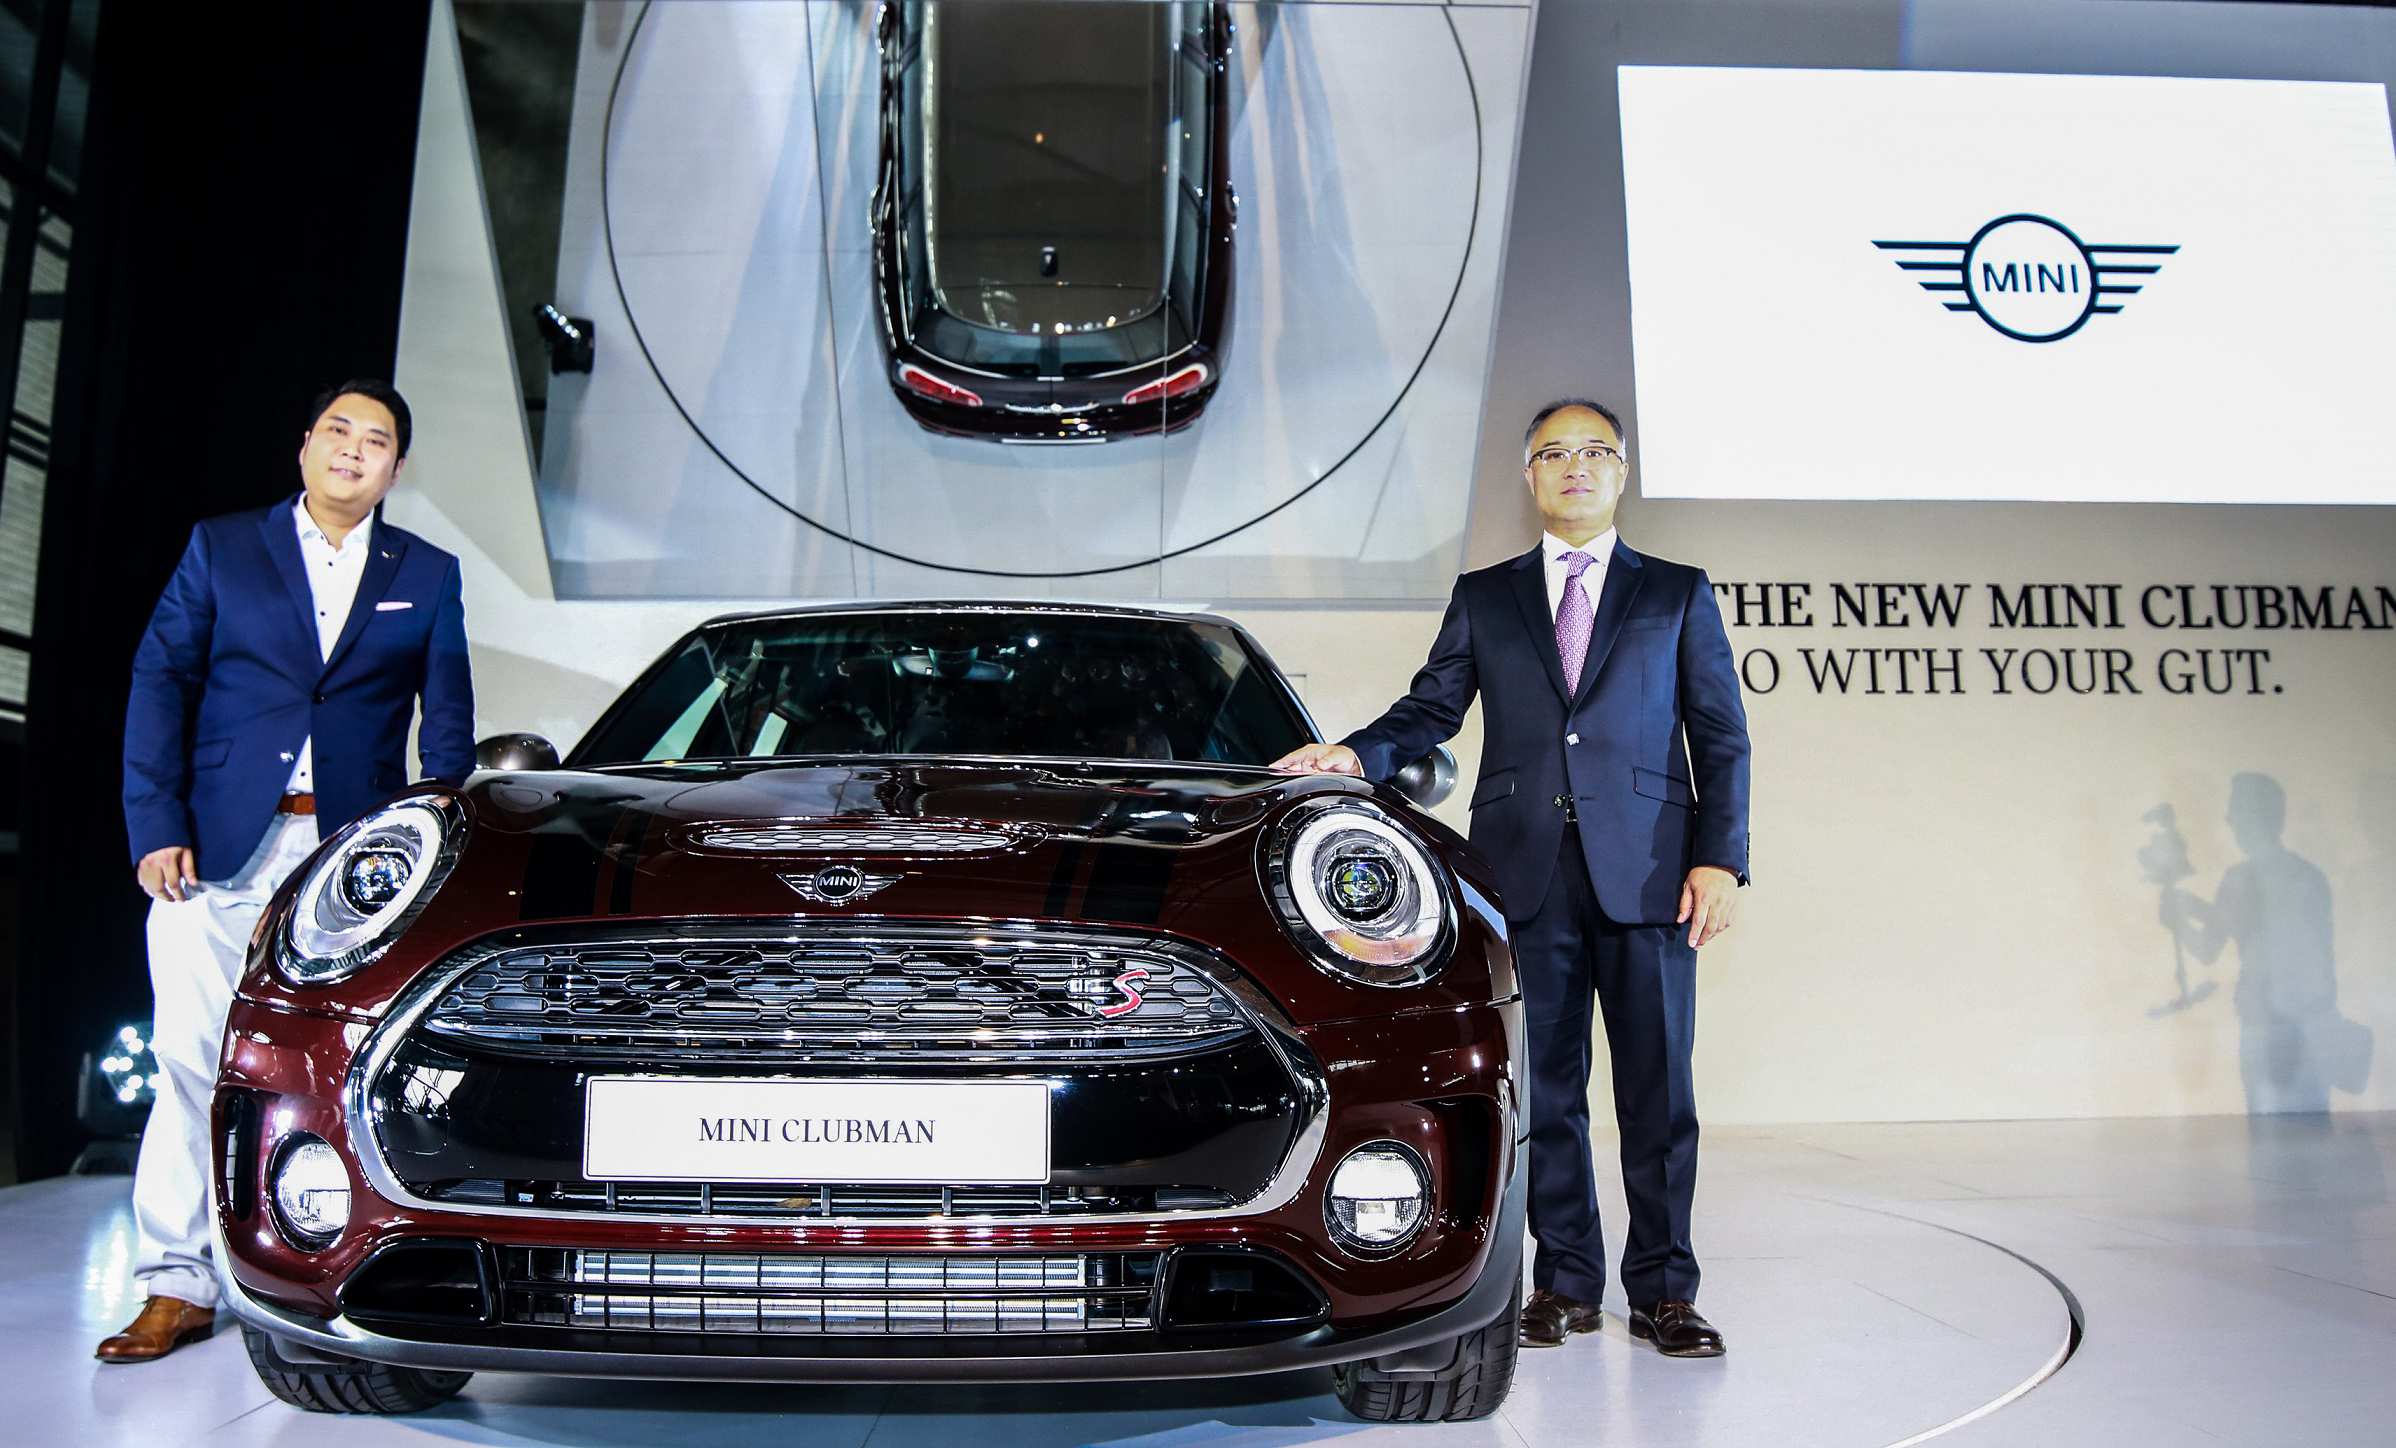 (From L-R) Mr. Kidd Yam, Head of MINI, BMW Group Malaysia and Mr. Han Sang Yun, Managing Director & CEO of BMW Group Malaysia with the new MINI Clubman.